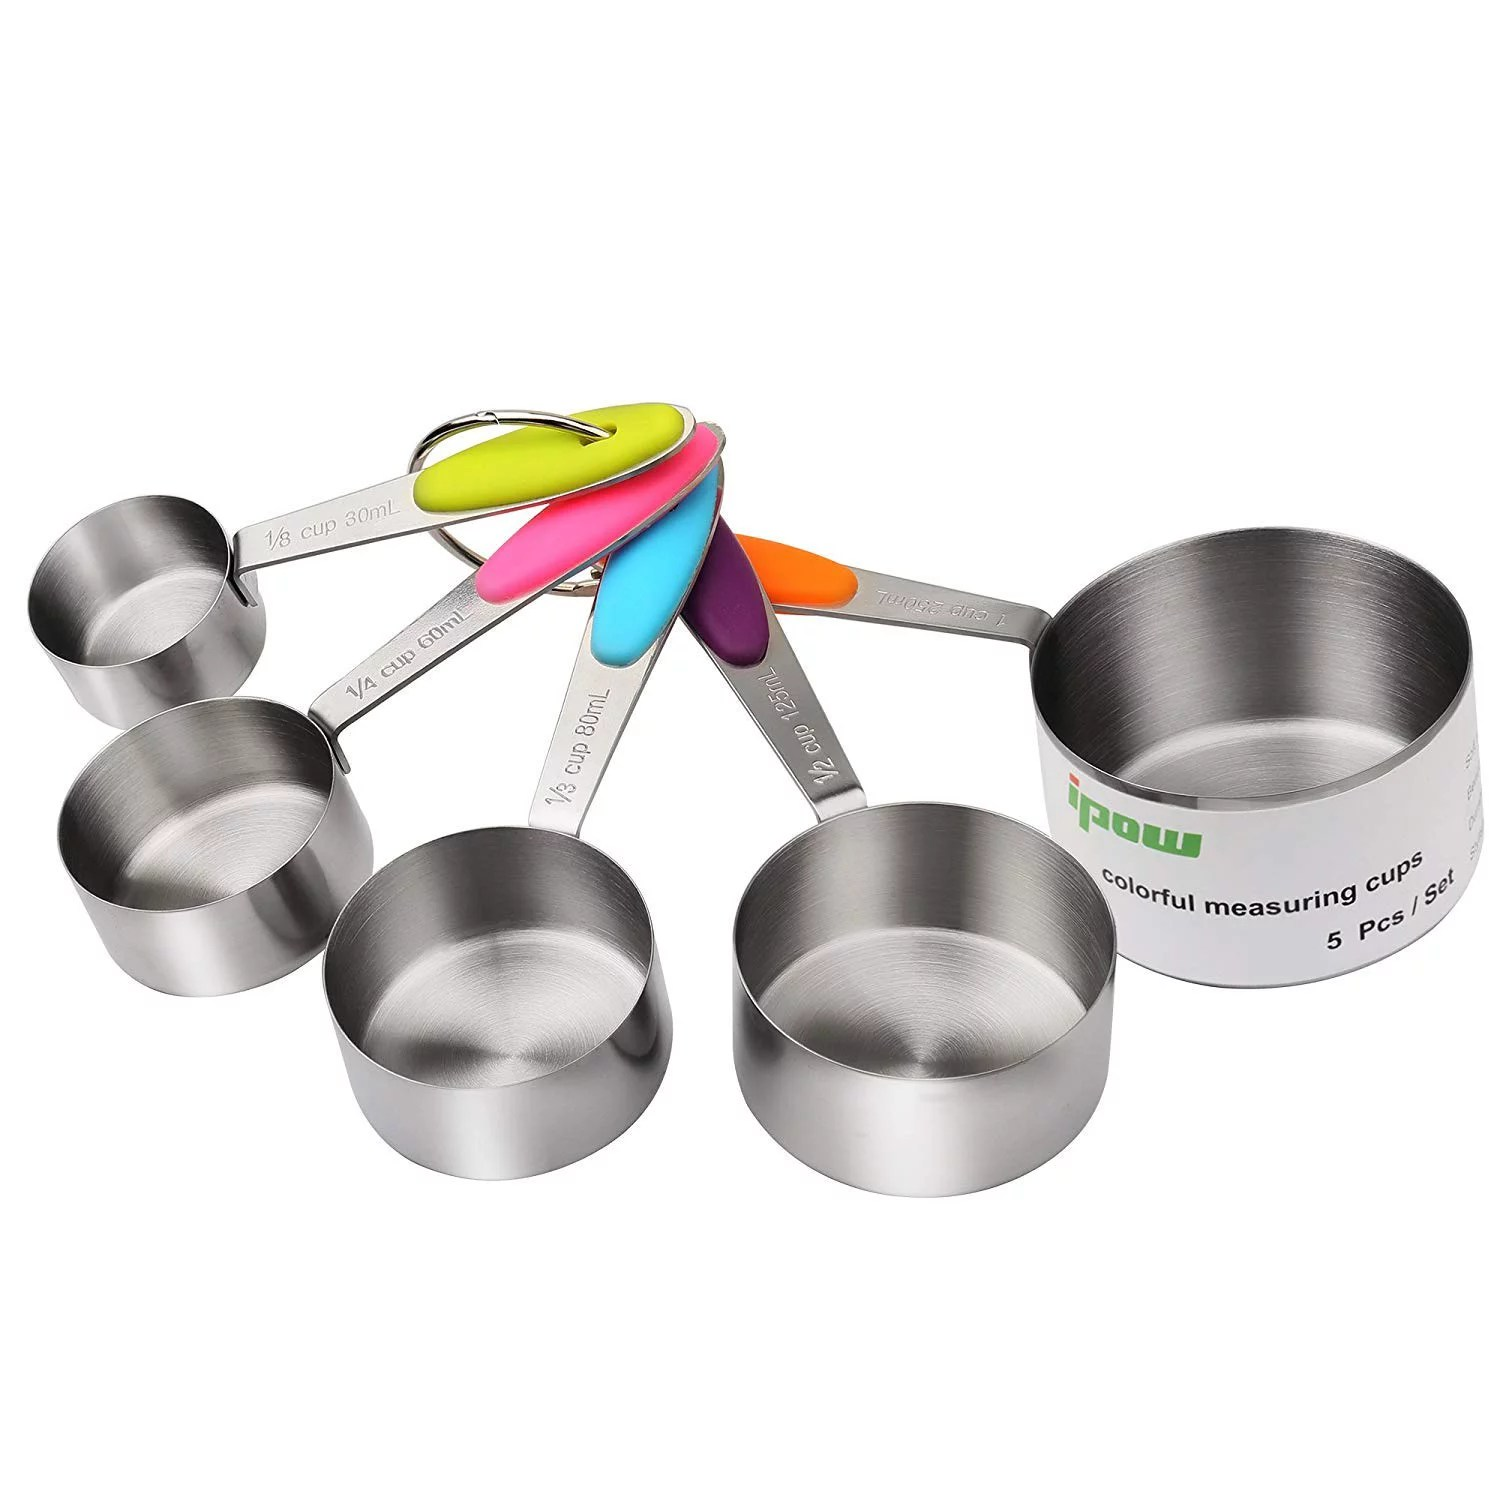 Ipow Stainless Steel Dry Amp Liquid Measuring Cups Set Of 5